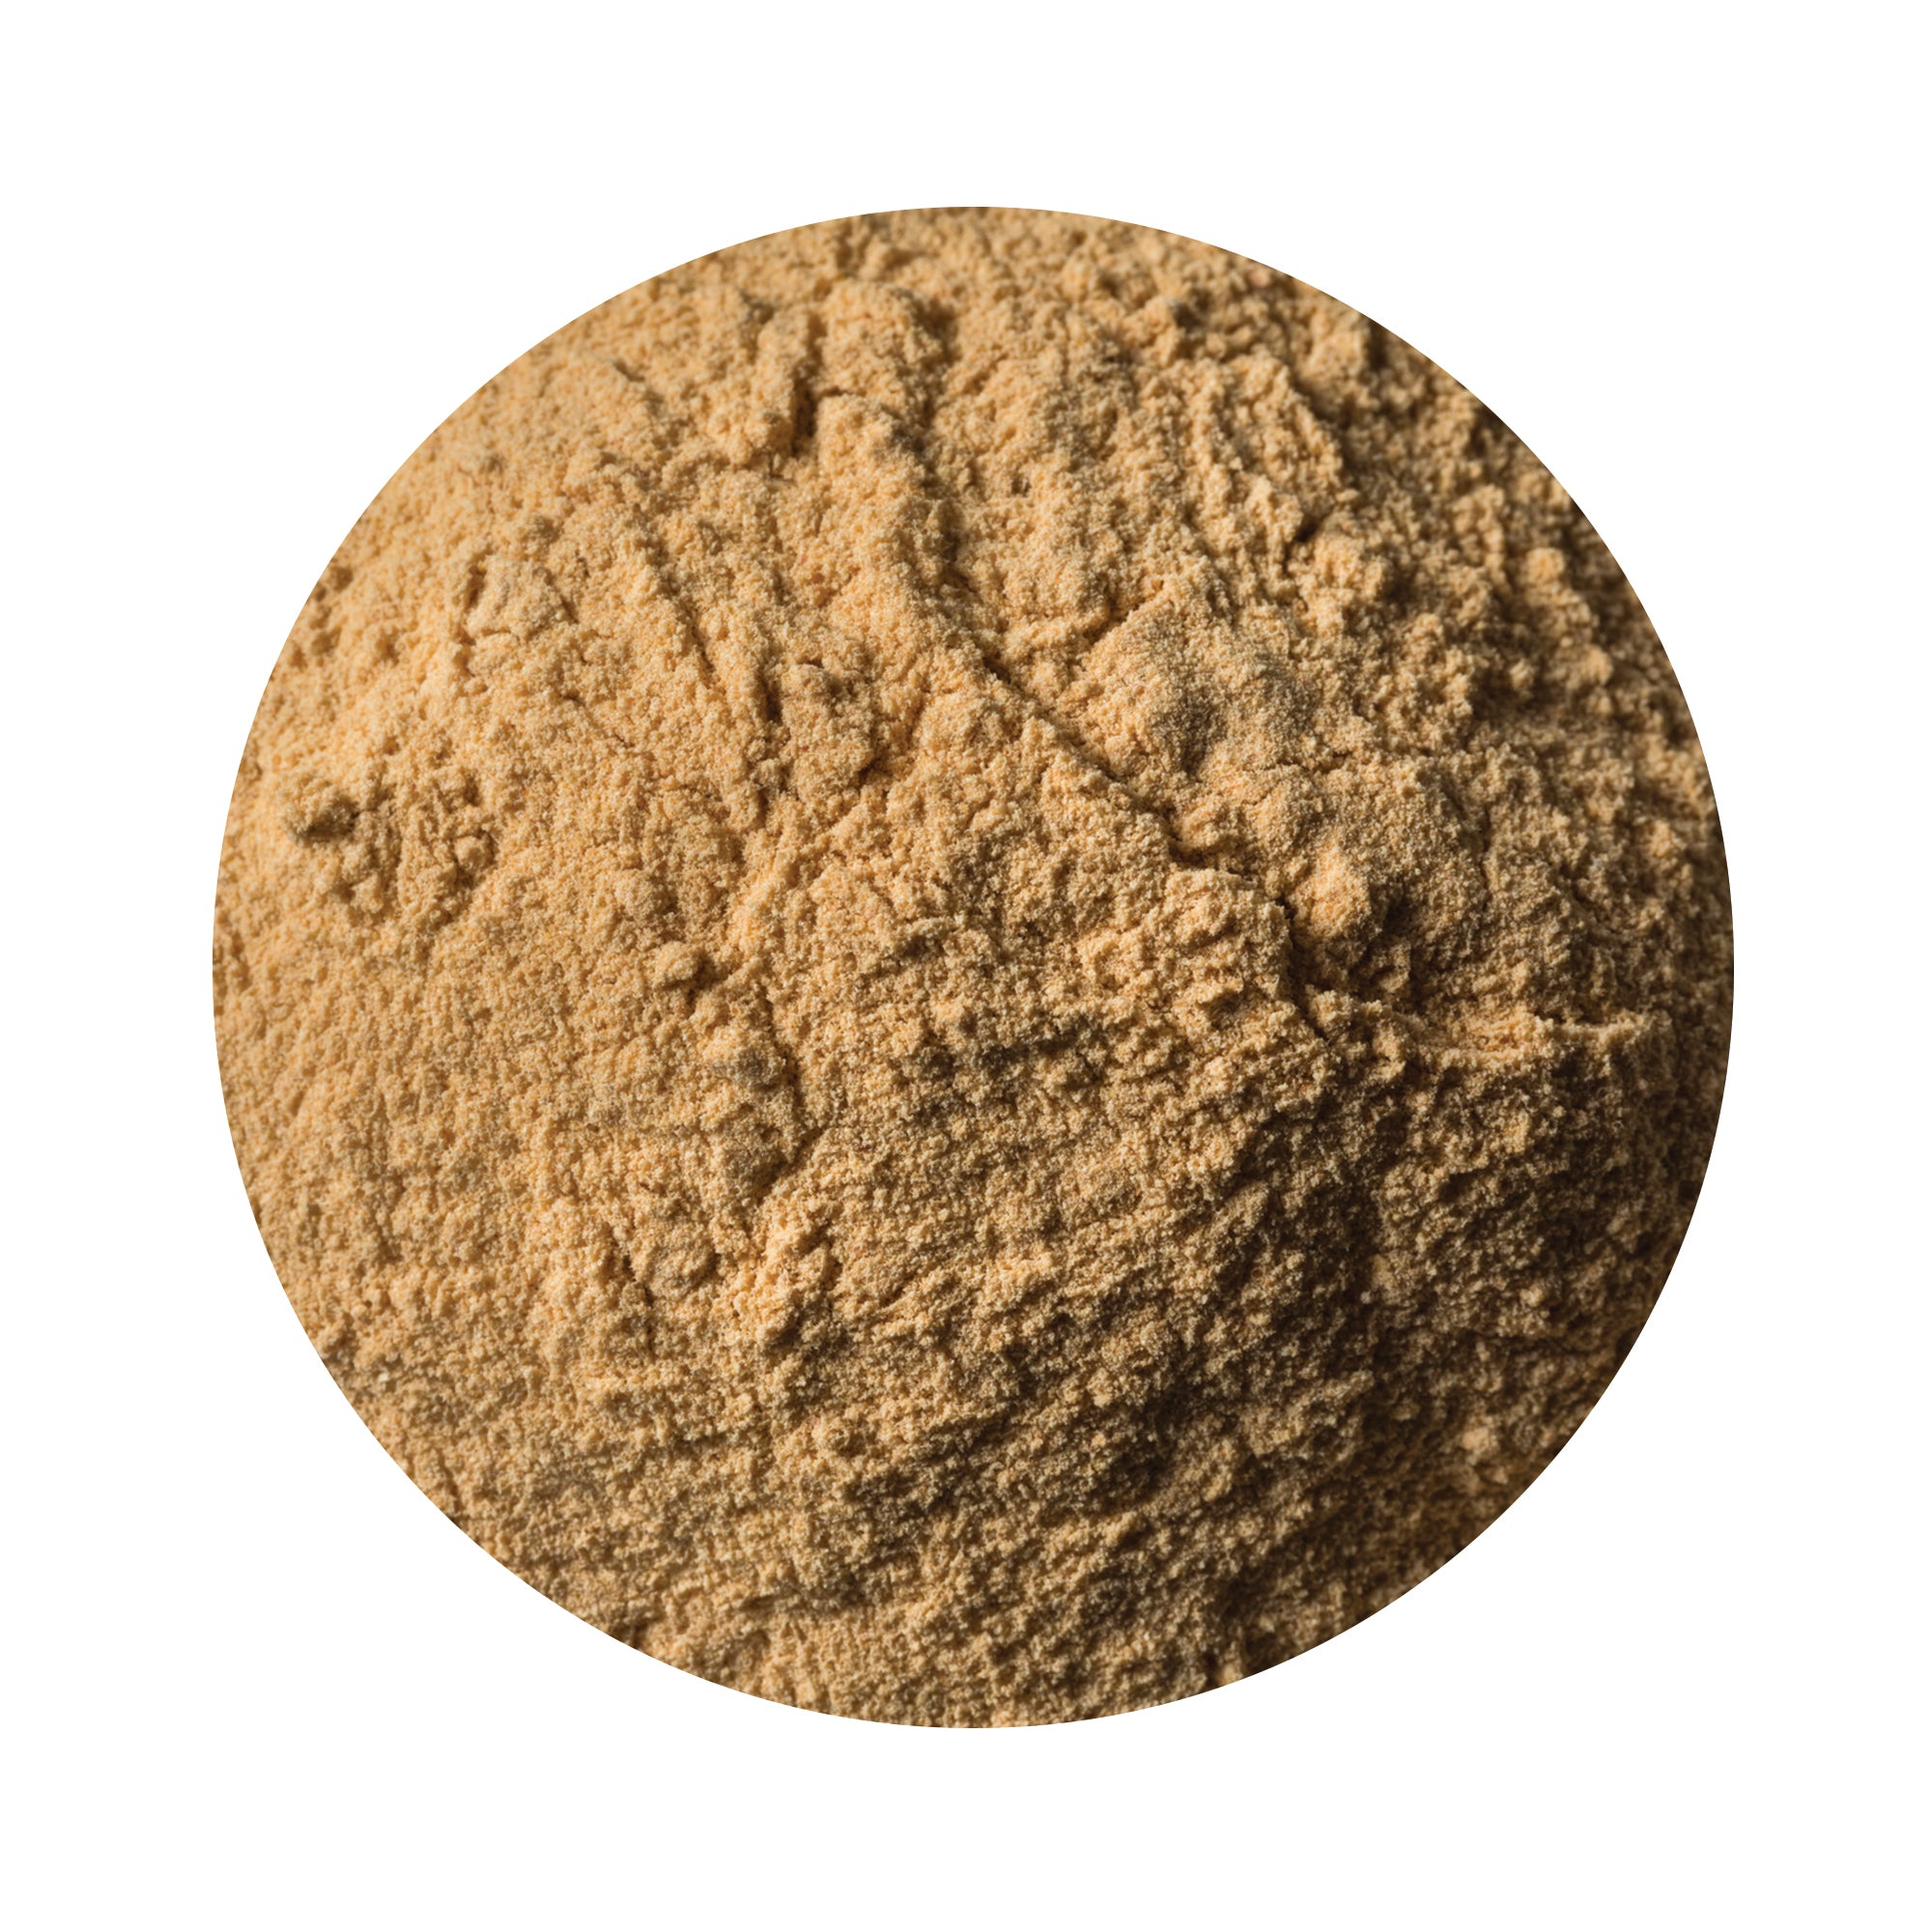 Lucuma Powder | Organic | Kosher - 5 Lb